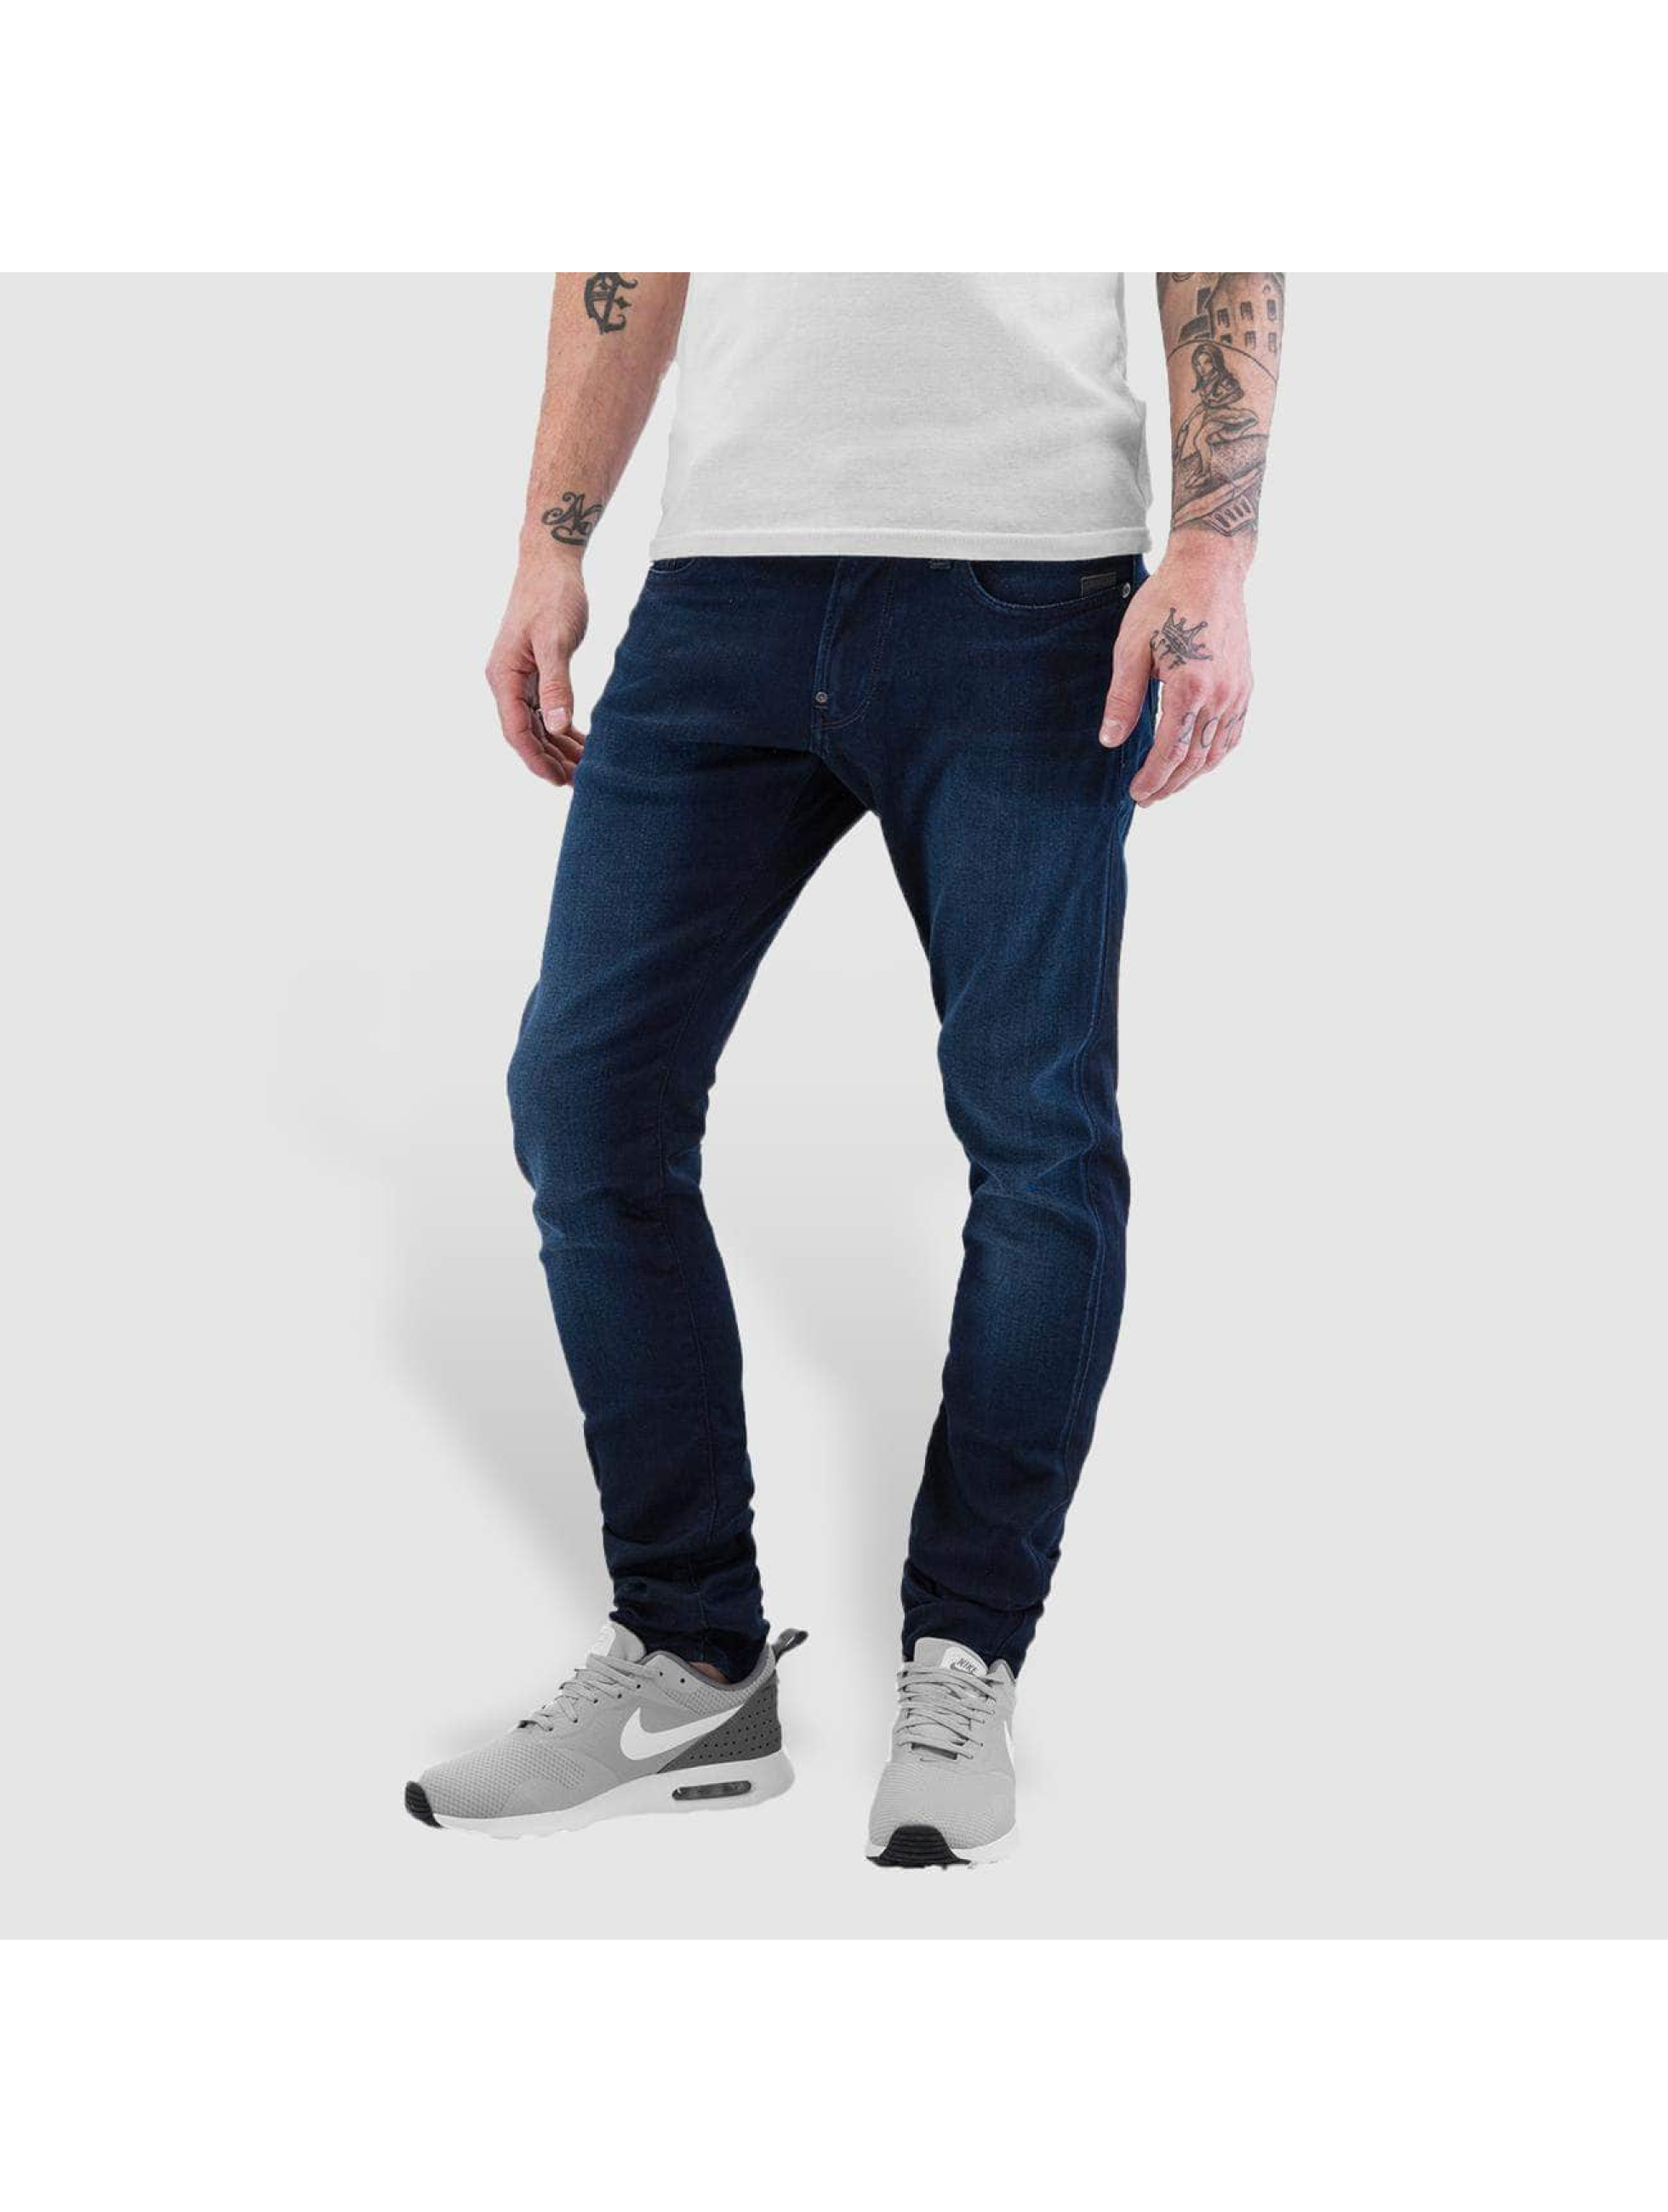 G-Star Slim Fit Jeans Revend blau